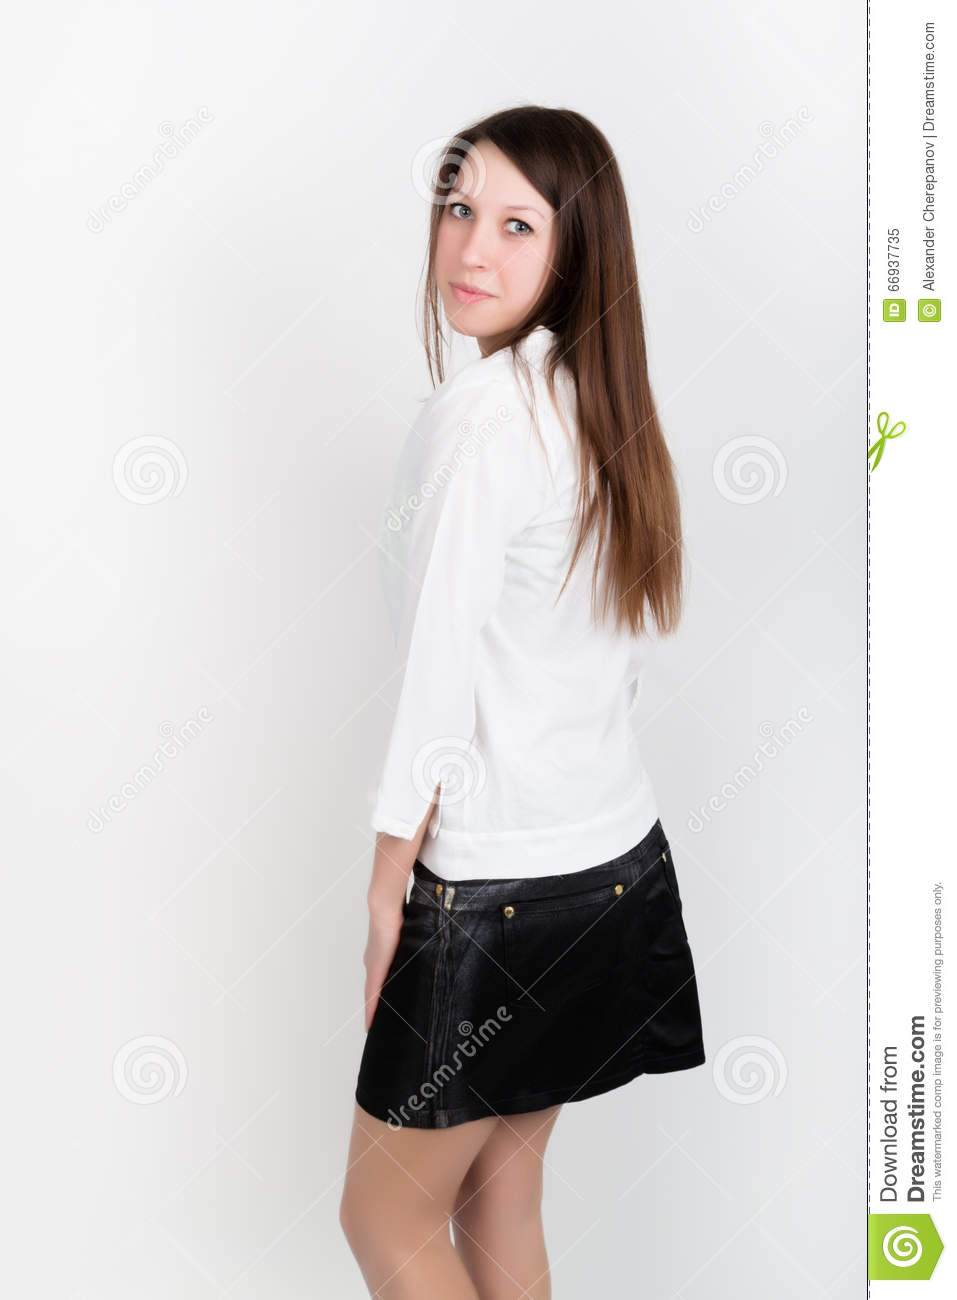 Beautiful Slim Girl In A Short Black Skirt And White Blouse Posing